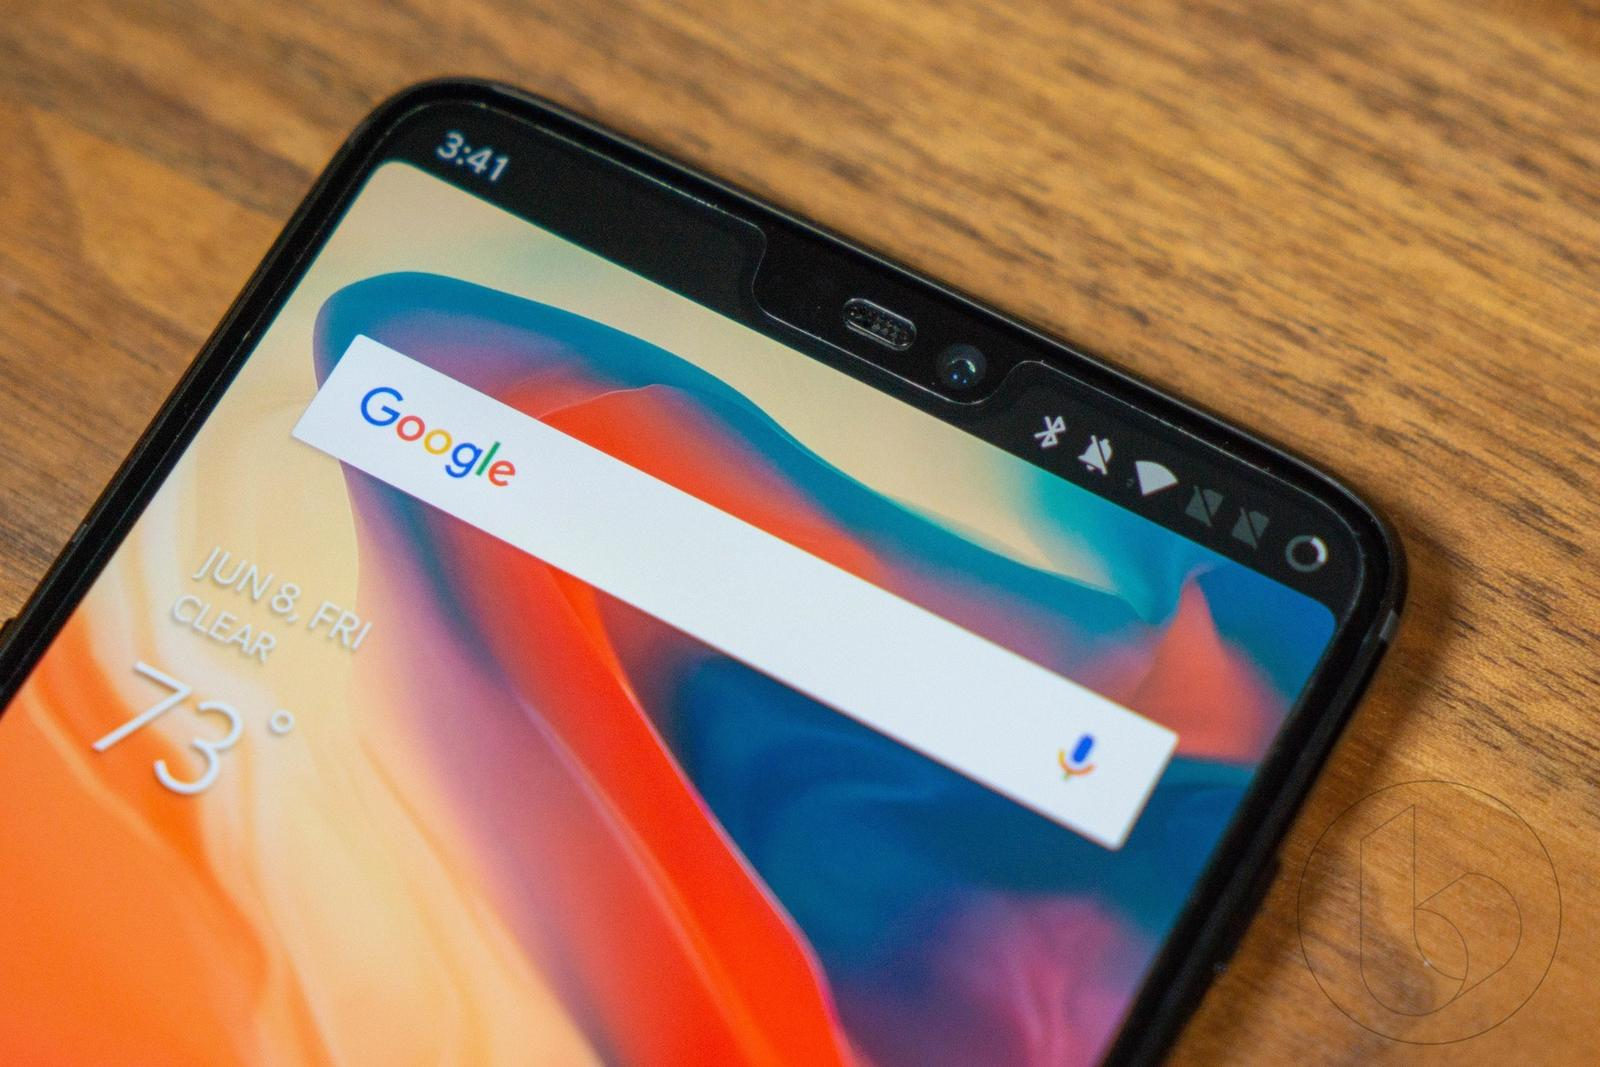 OnePlus 6 review: Is this the best Android phone available